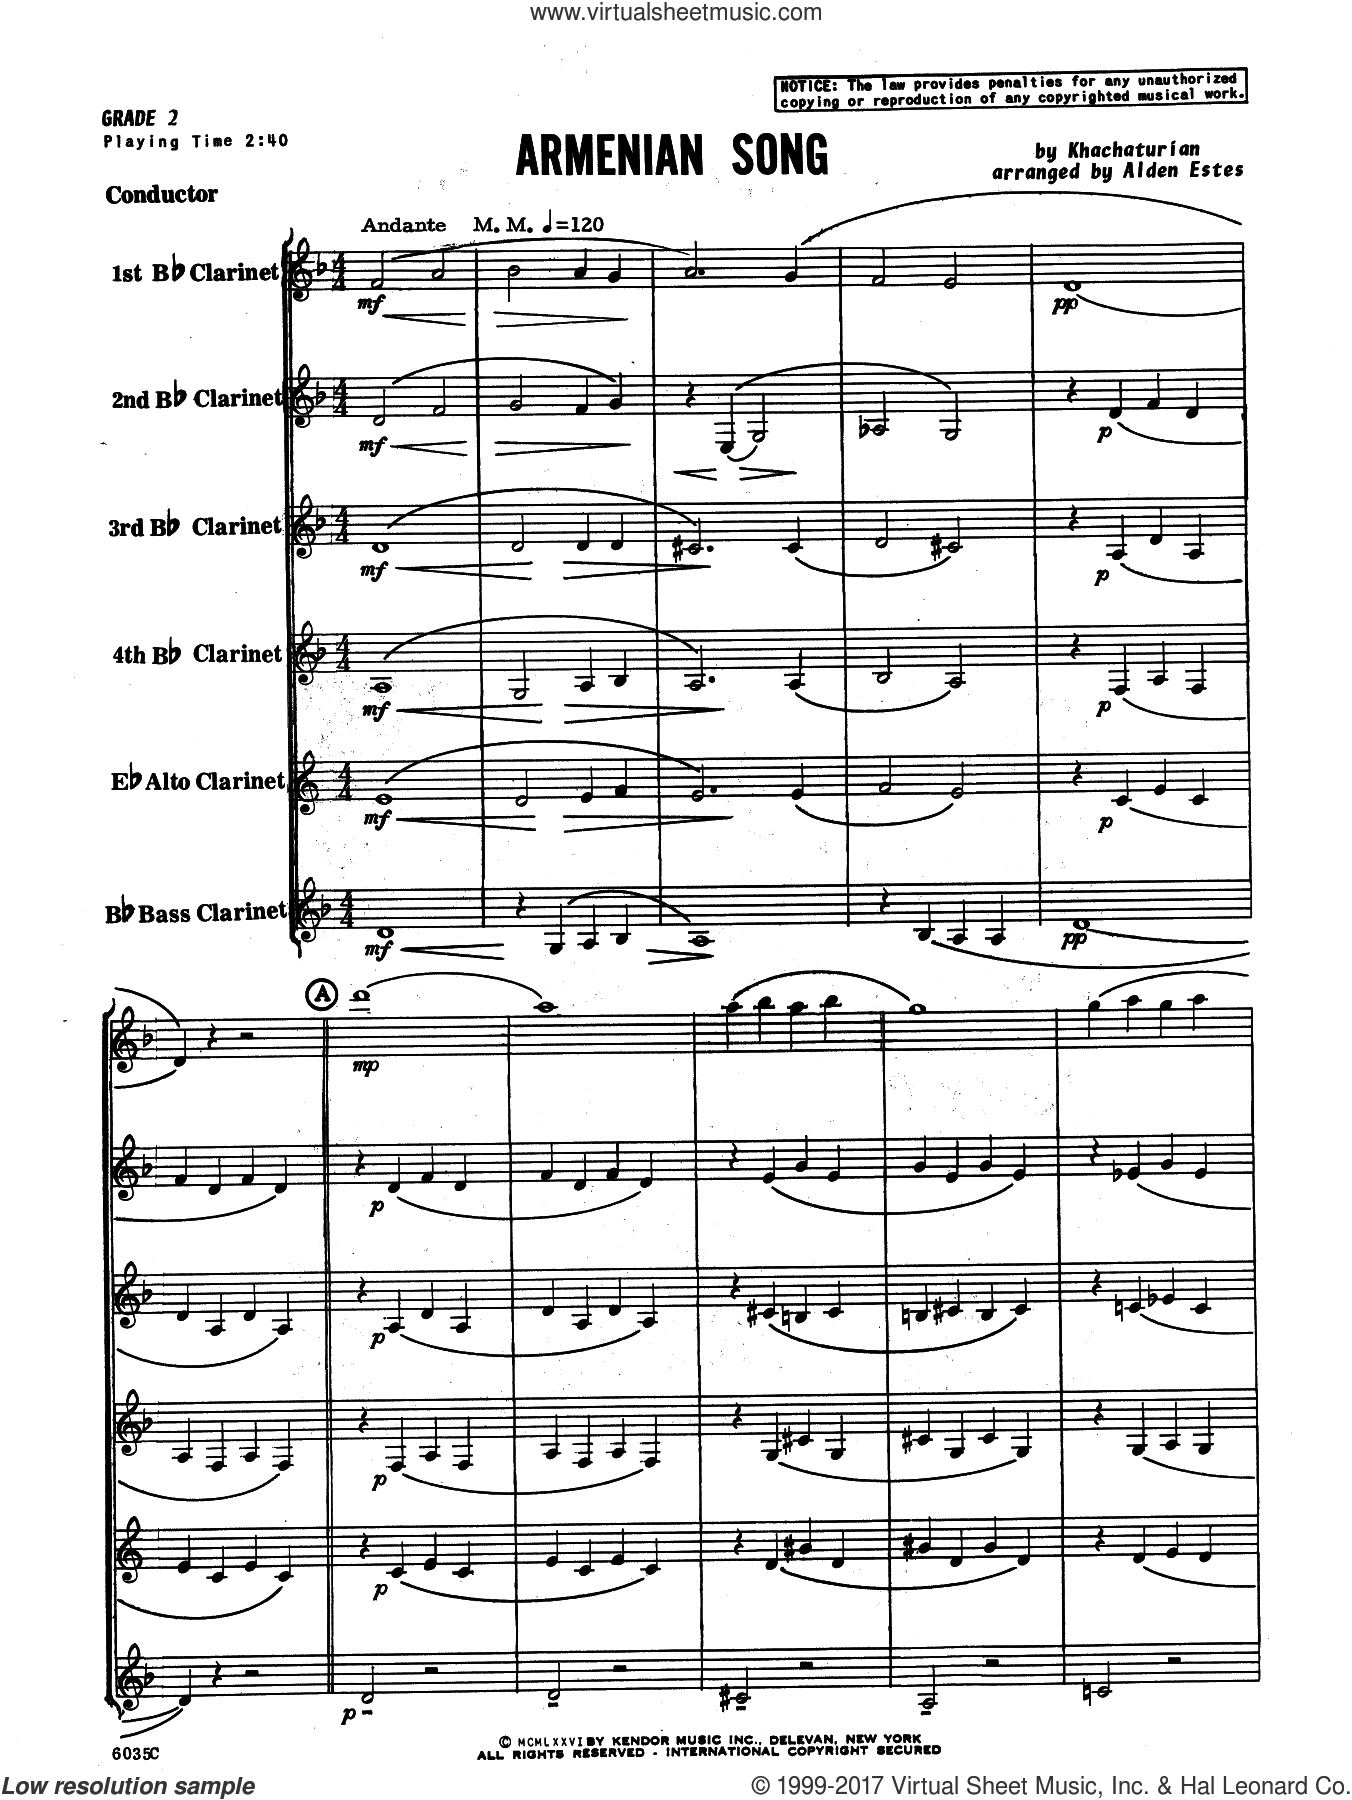 Armenian Song (COMPLETE) sheet music for clarinet ensemble by Aram Khachaturian and Alden Estes, classical score, intermediate skill level